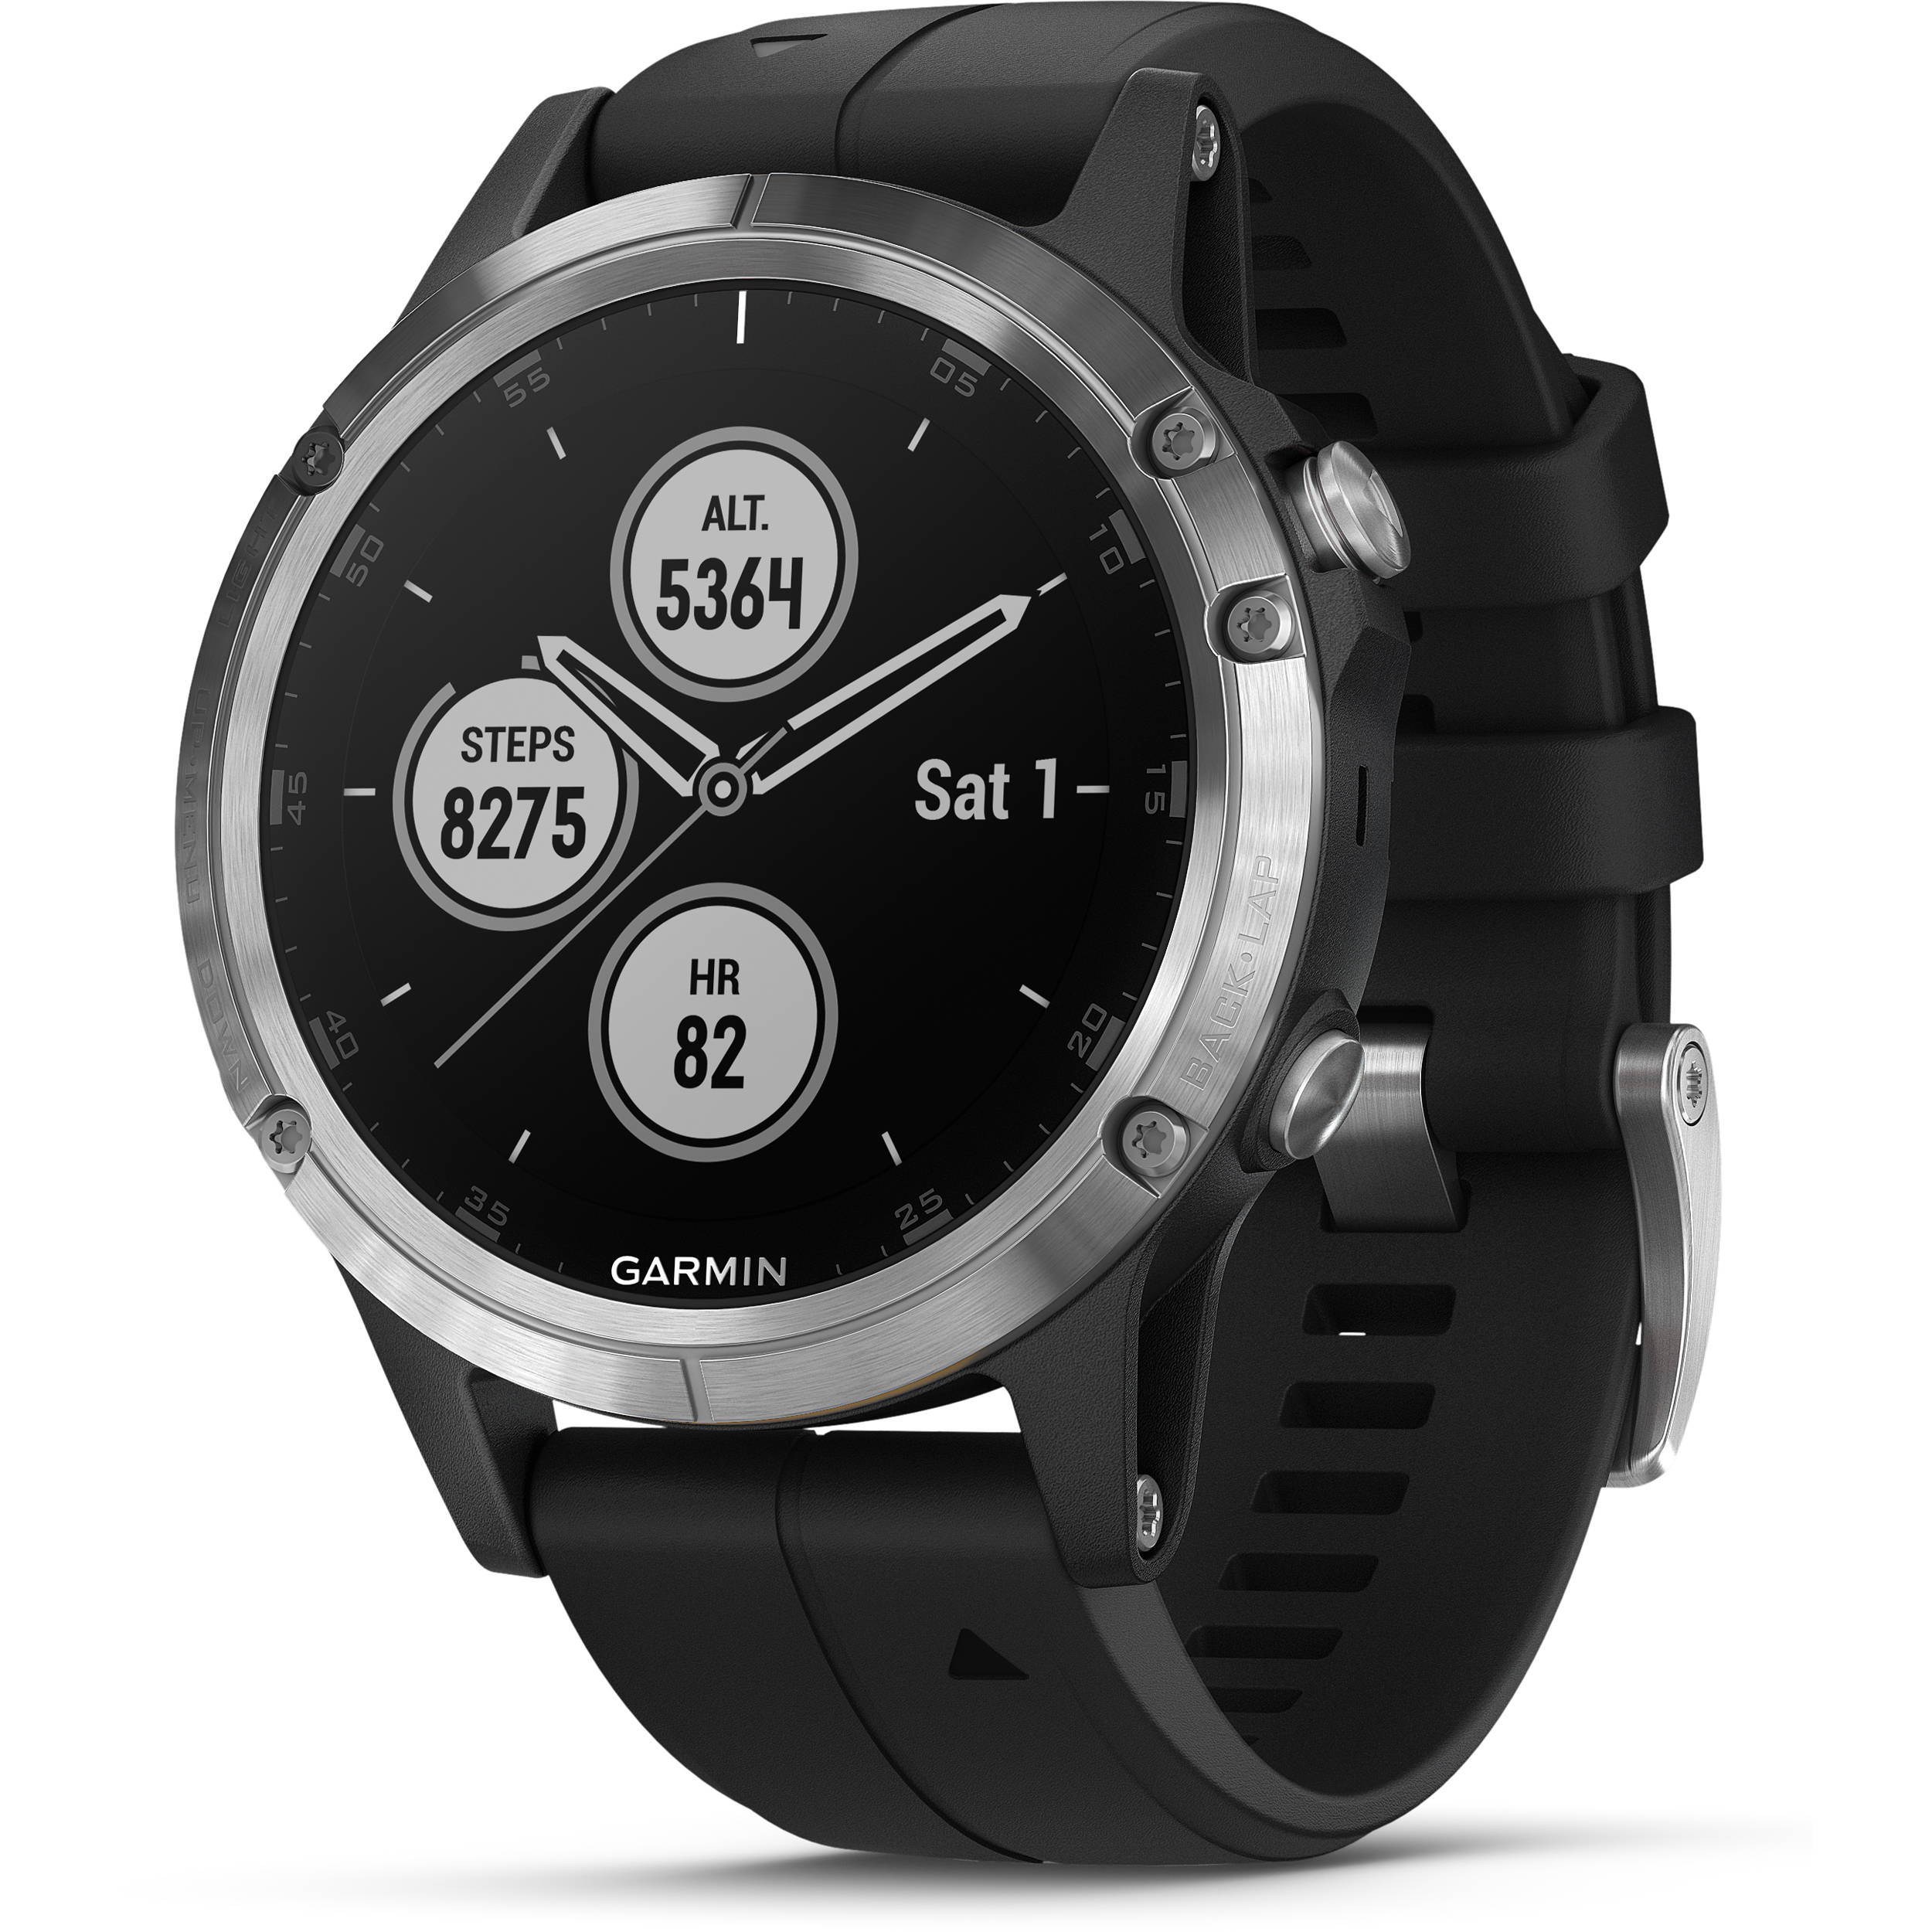 Garmin Fenix 5 Plus Glass Premium Multisport Watch with Music, Maps, and Garmin Pay